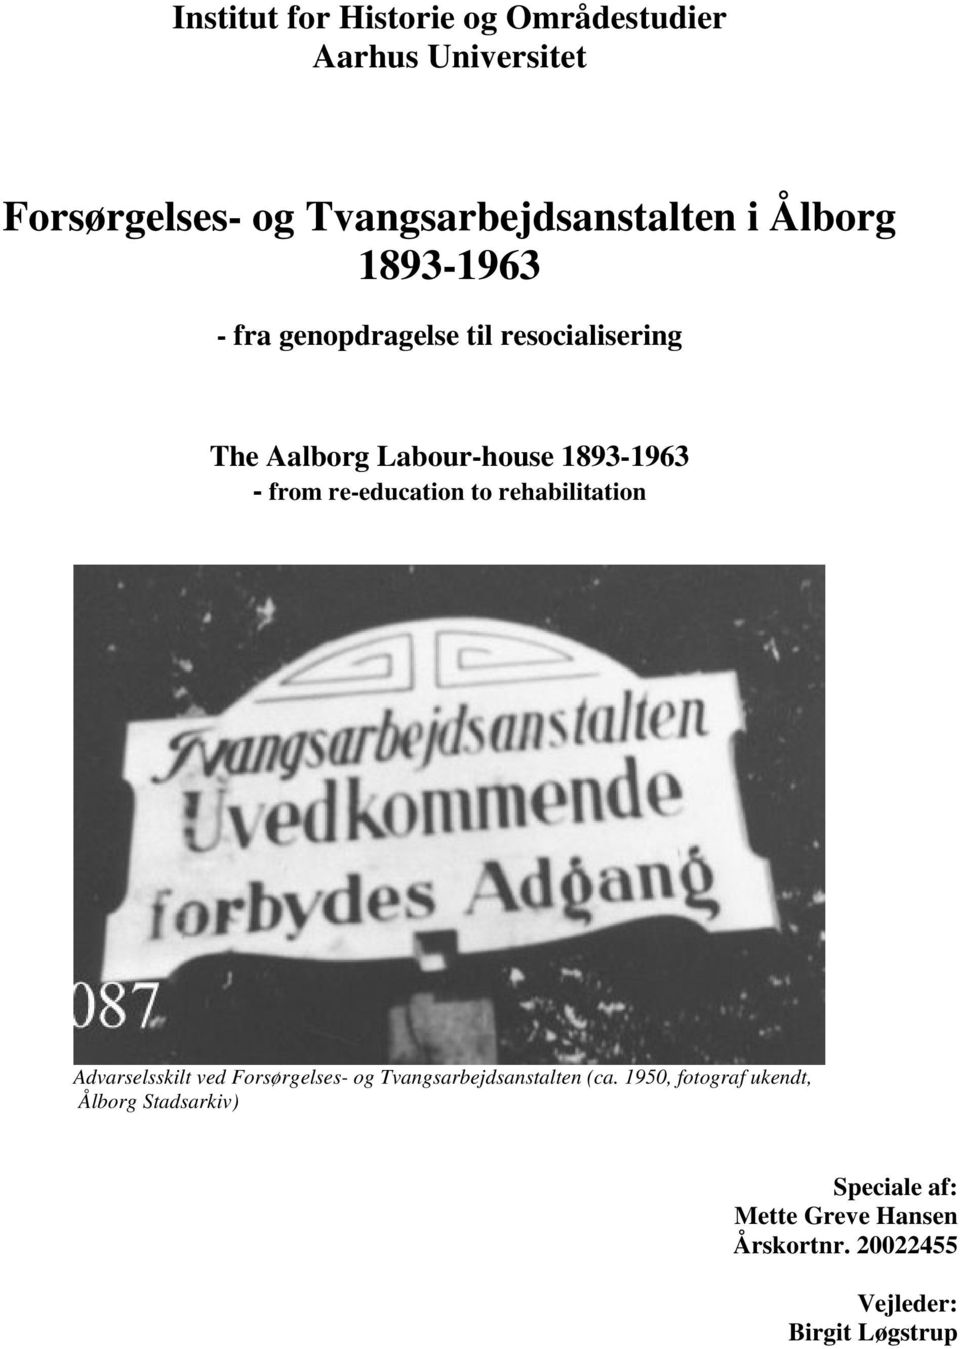 re-education to rehabilitation Advarselsskilt ved Forsørgelses- og Tvangsarbejdsanstalten (ca.